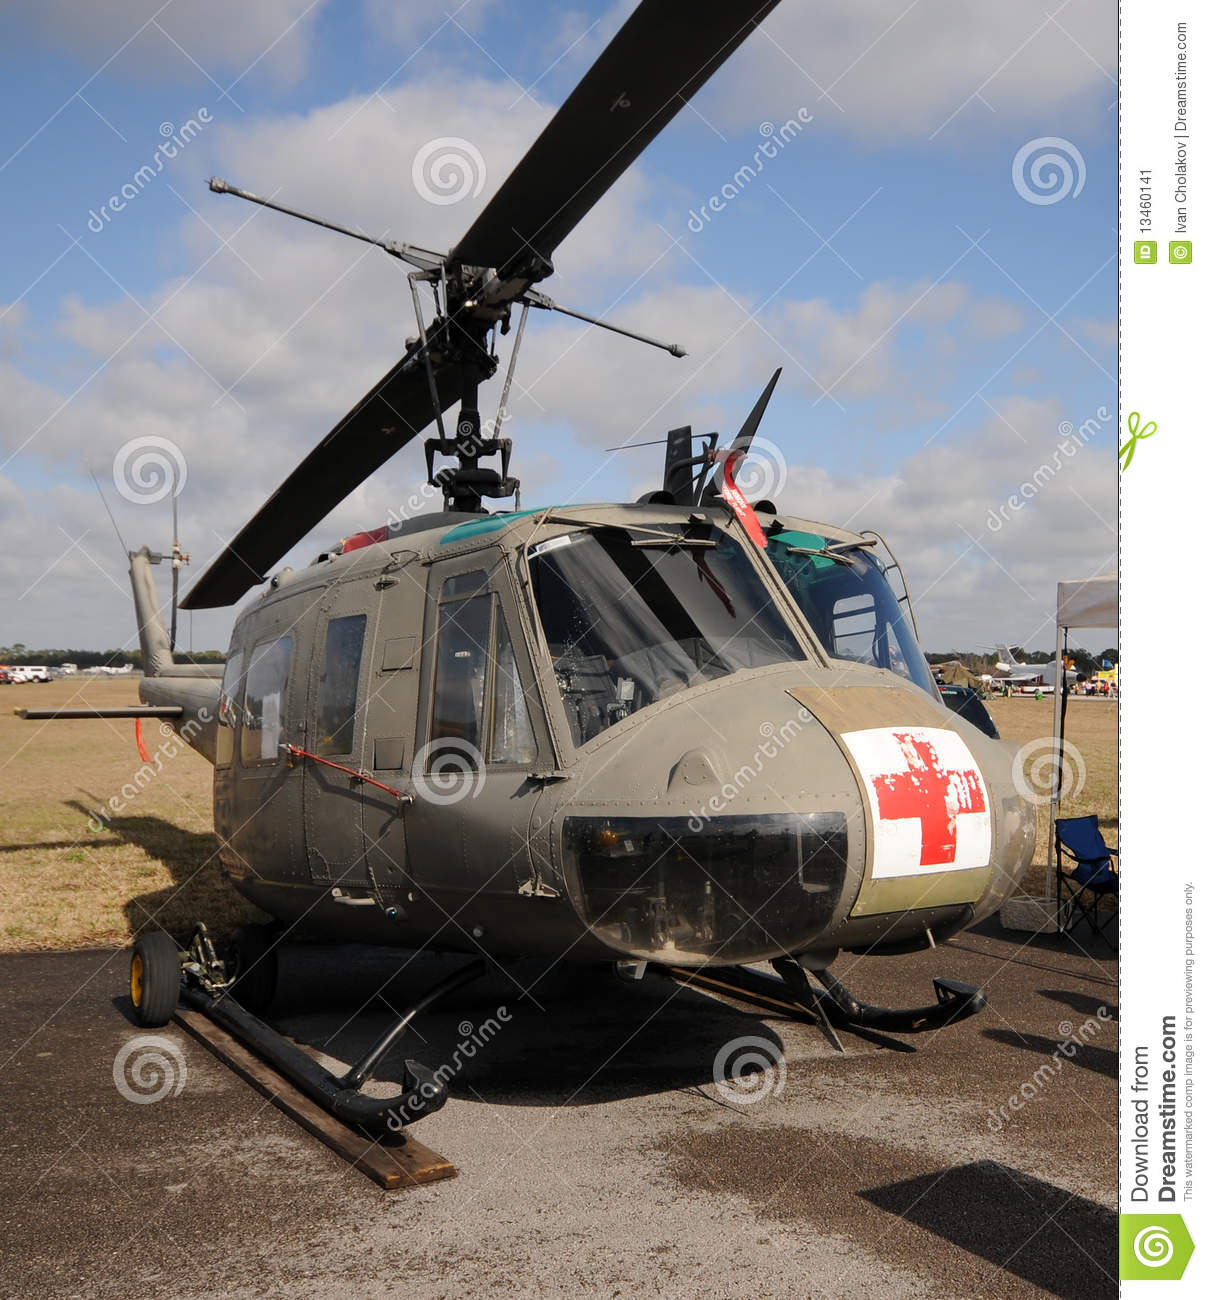 helicopter s prices with Stock Image Medical Helicopter Image13460141 on Murrayayson moreover Palau Big Five Extension as well Stock Illustration Drone Copter Flight Delivering Box Cartoon Illustration Flying Post Office Image42593712 further Shelby Series 1 as well Royalty Free Stock Photography Green Dragon Image9071467.